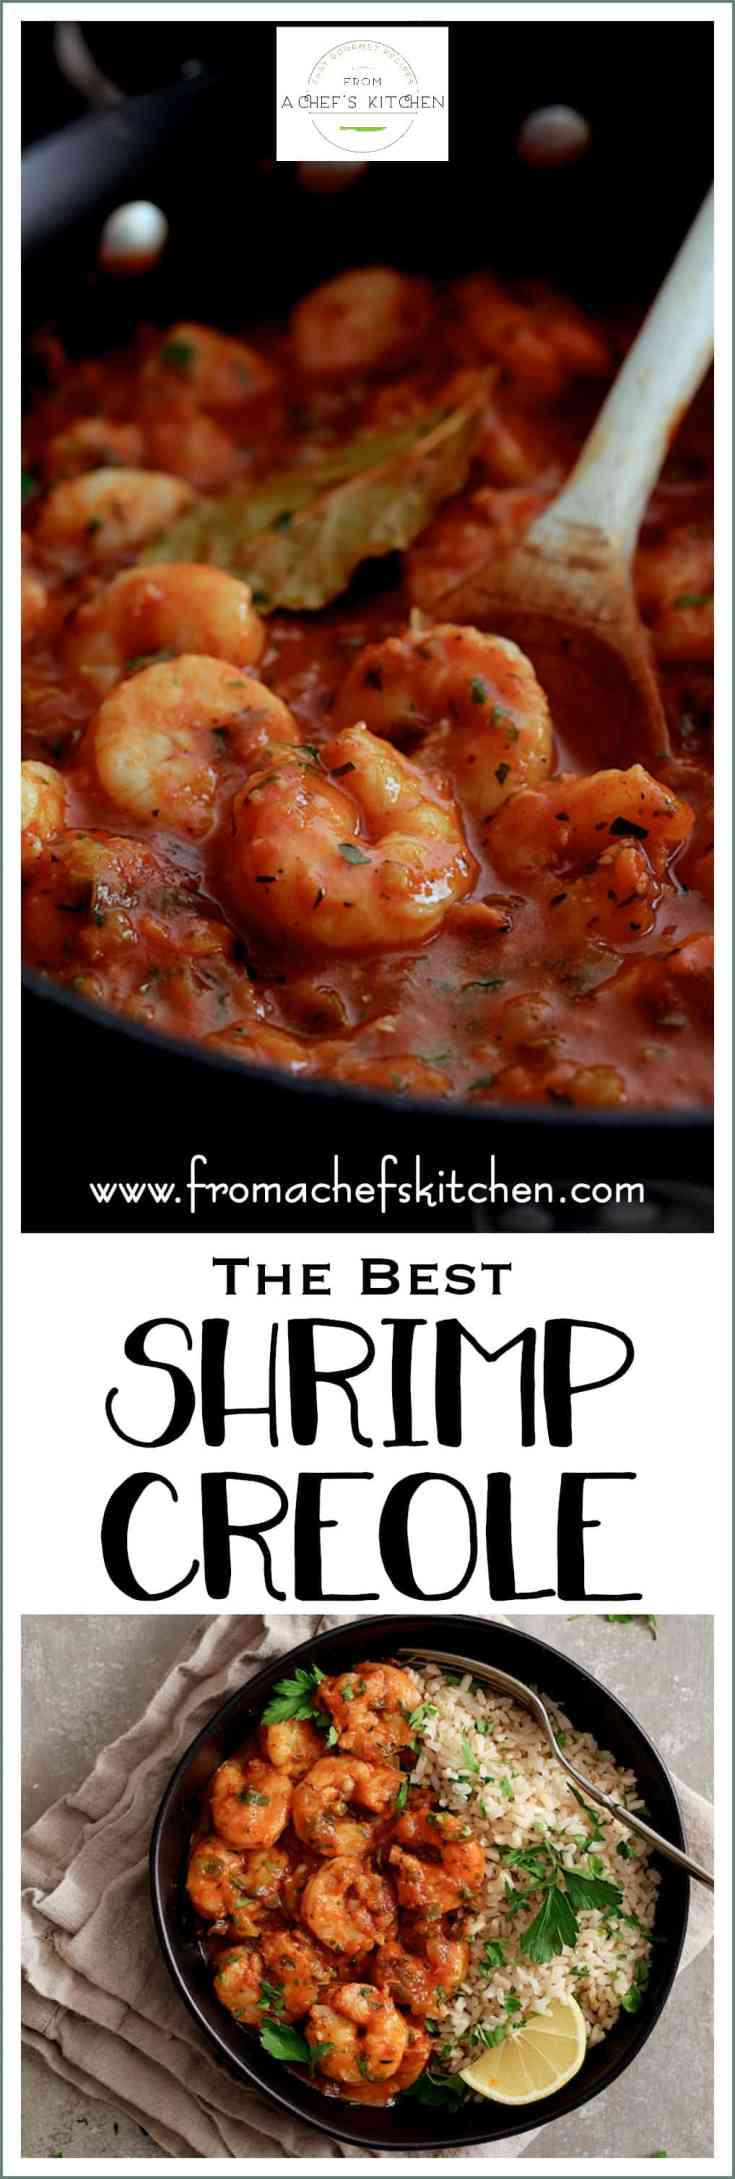 Sharing The Best Shrimp Creole!  Friends, this is IT!  This New Orleans-inspired dish is one I've been making for clients for as long as I've been a personal chef and this recipe never fails to disappoint!  #fish #seafood #shrimp #NewOrleans #shrimpcreole